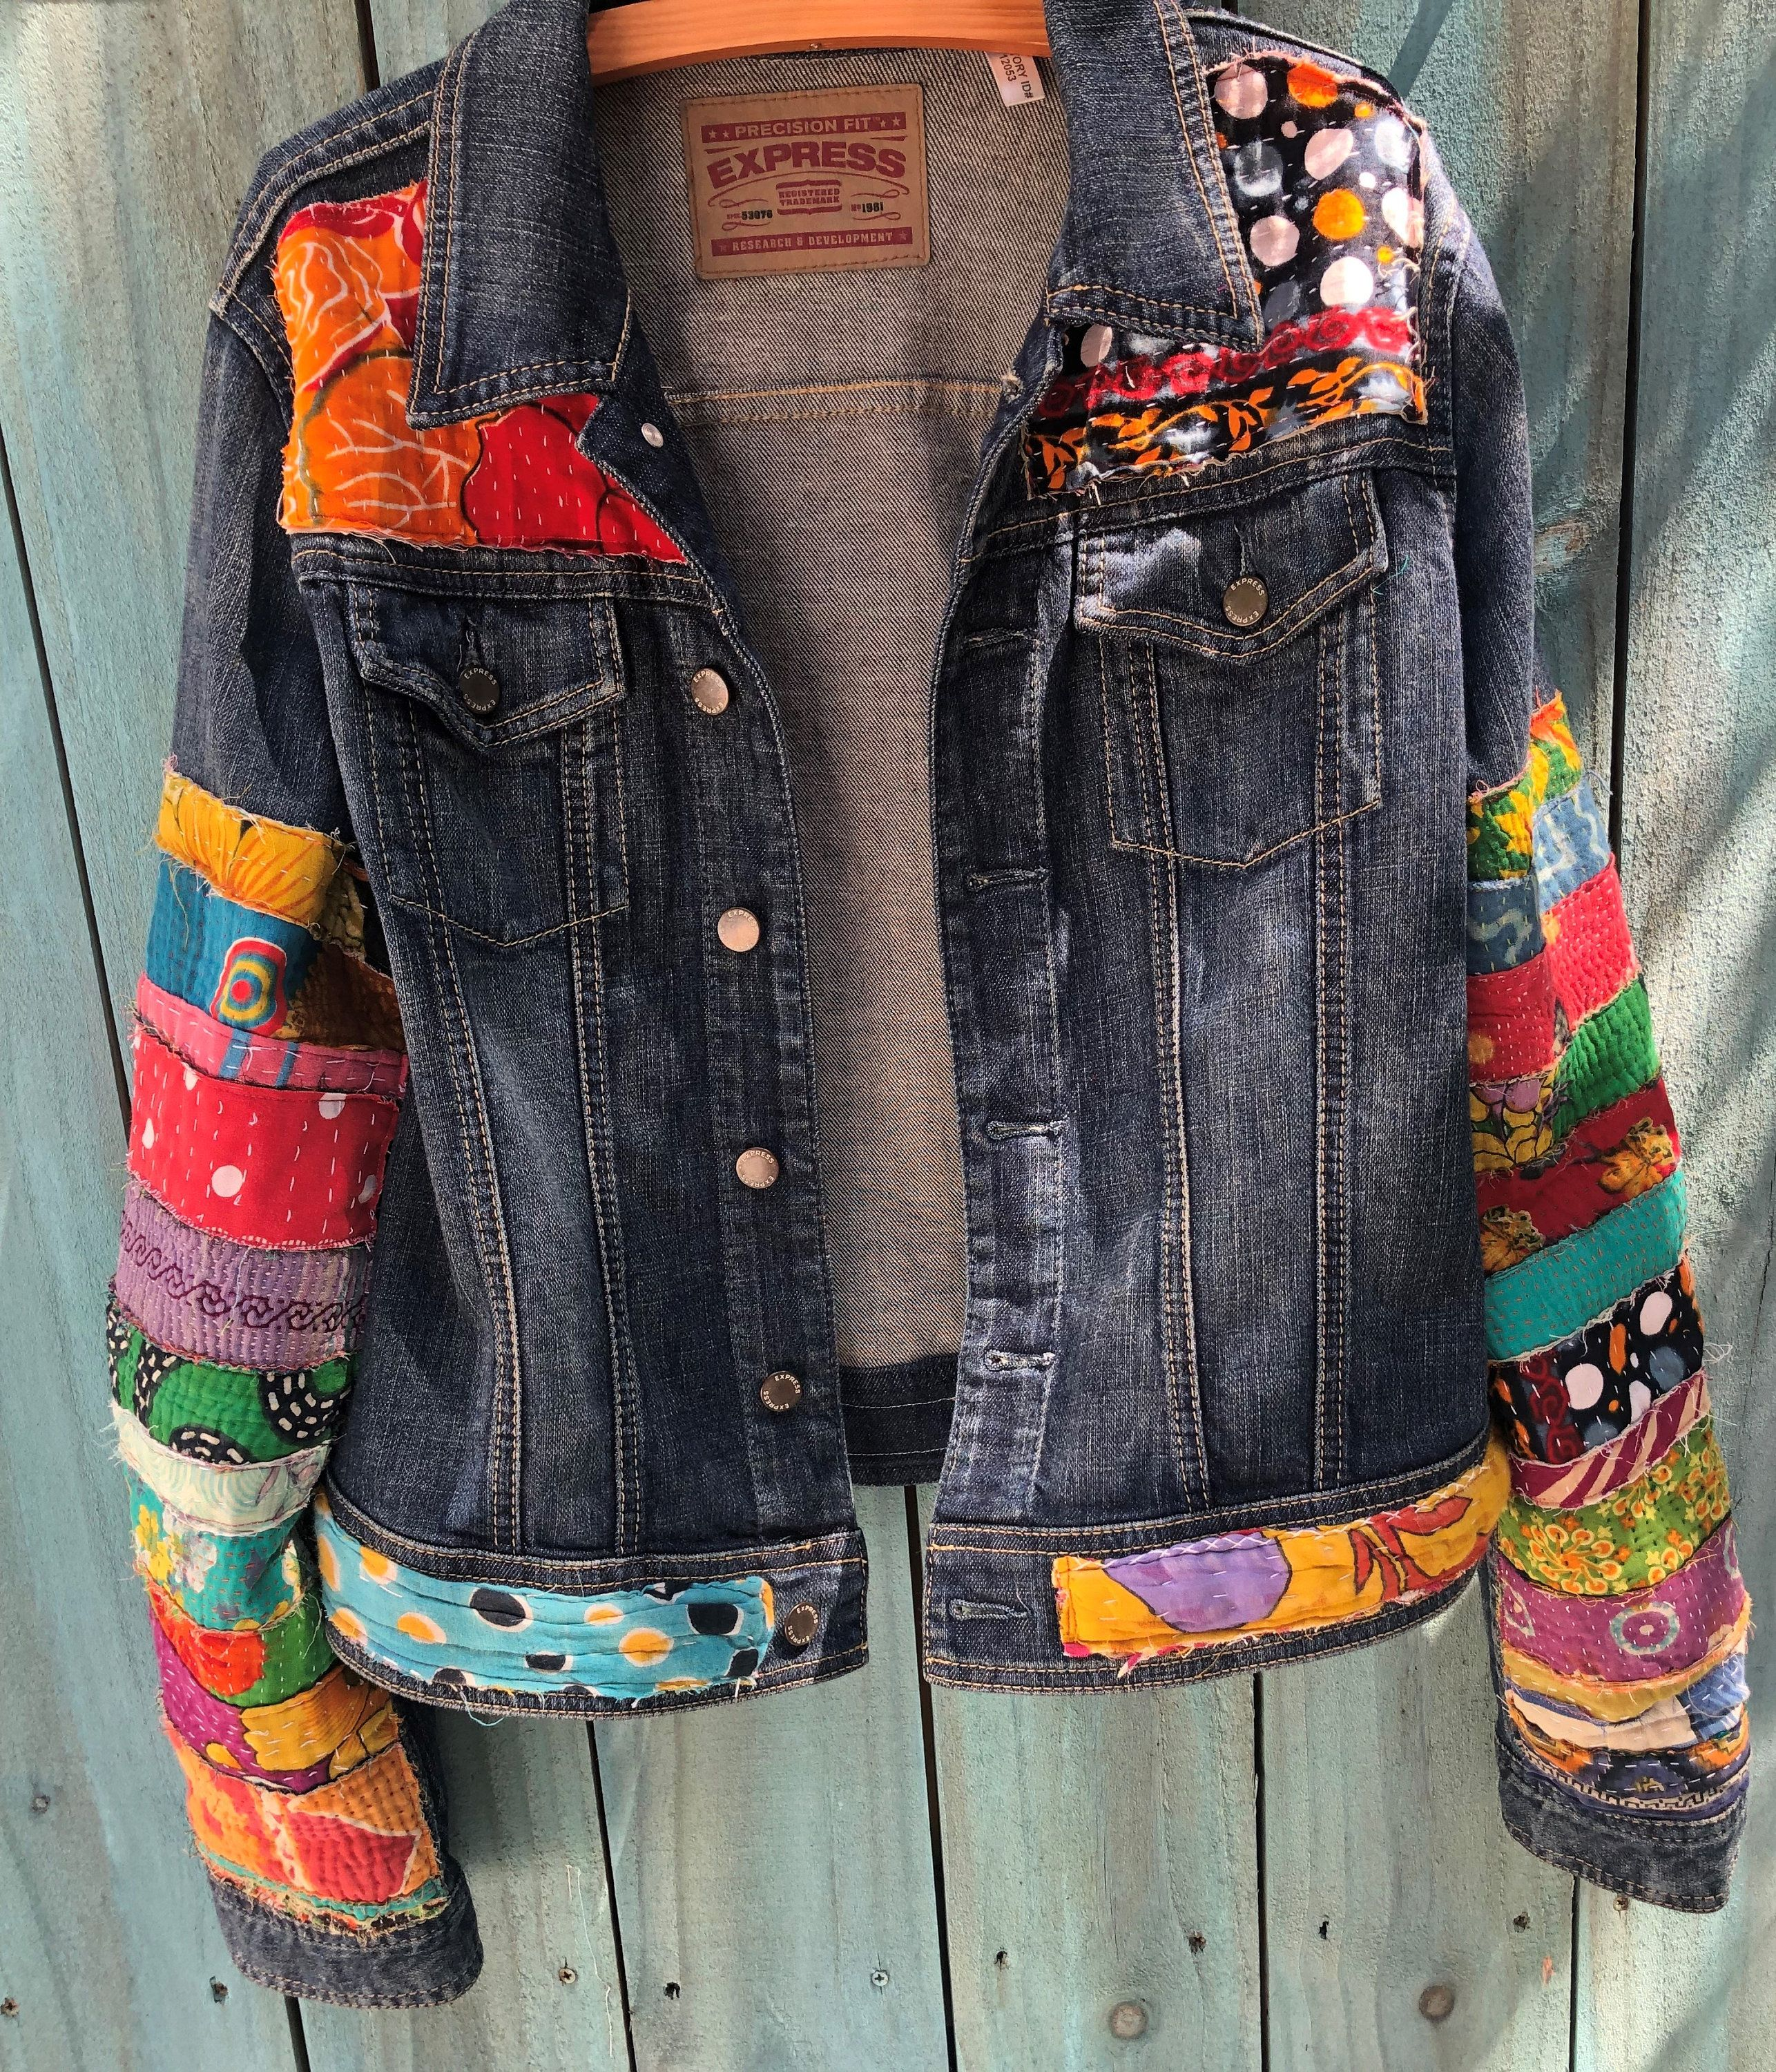 Jean Jacket Hippie Boho Embellished Colorful Denim Jean Jacket Etsy Denim Jean Jacket Jean Jacket Outfits Colored Denim [ 3000 x 2572 Pixel ]